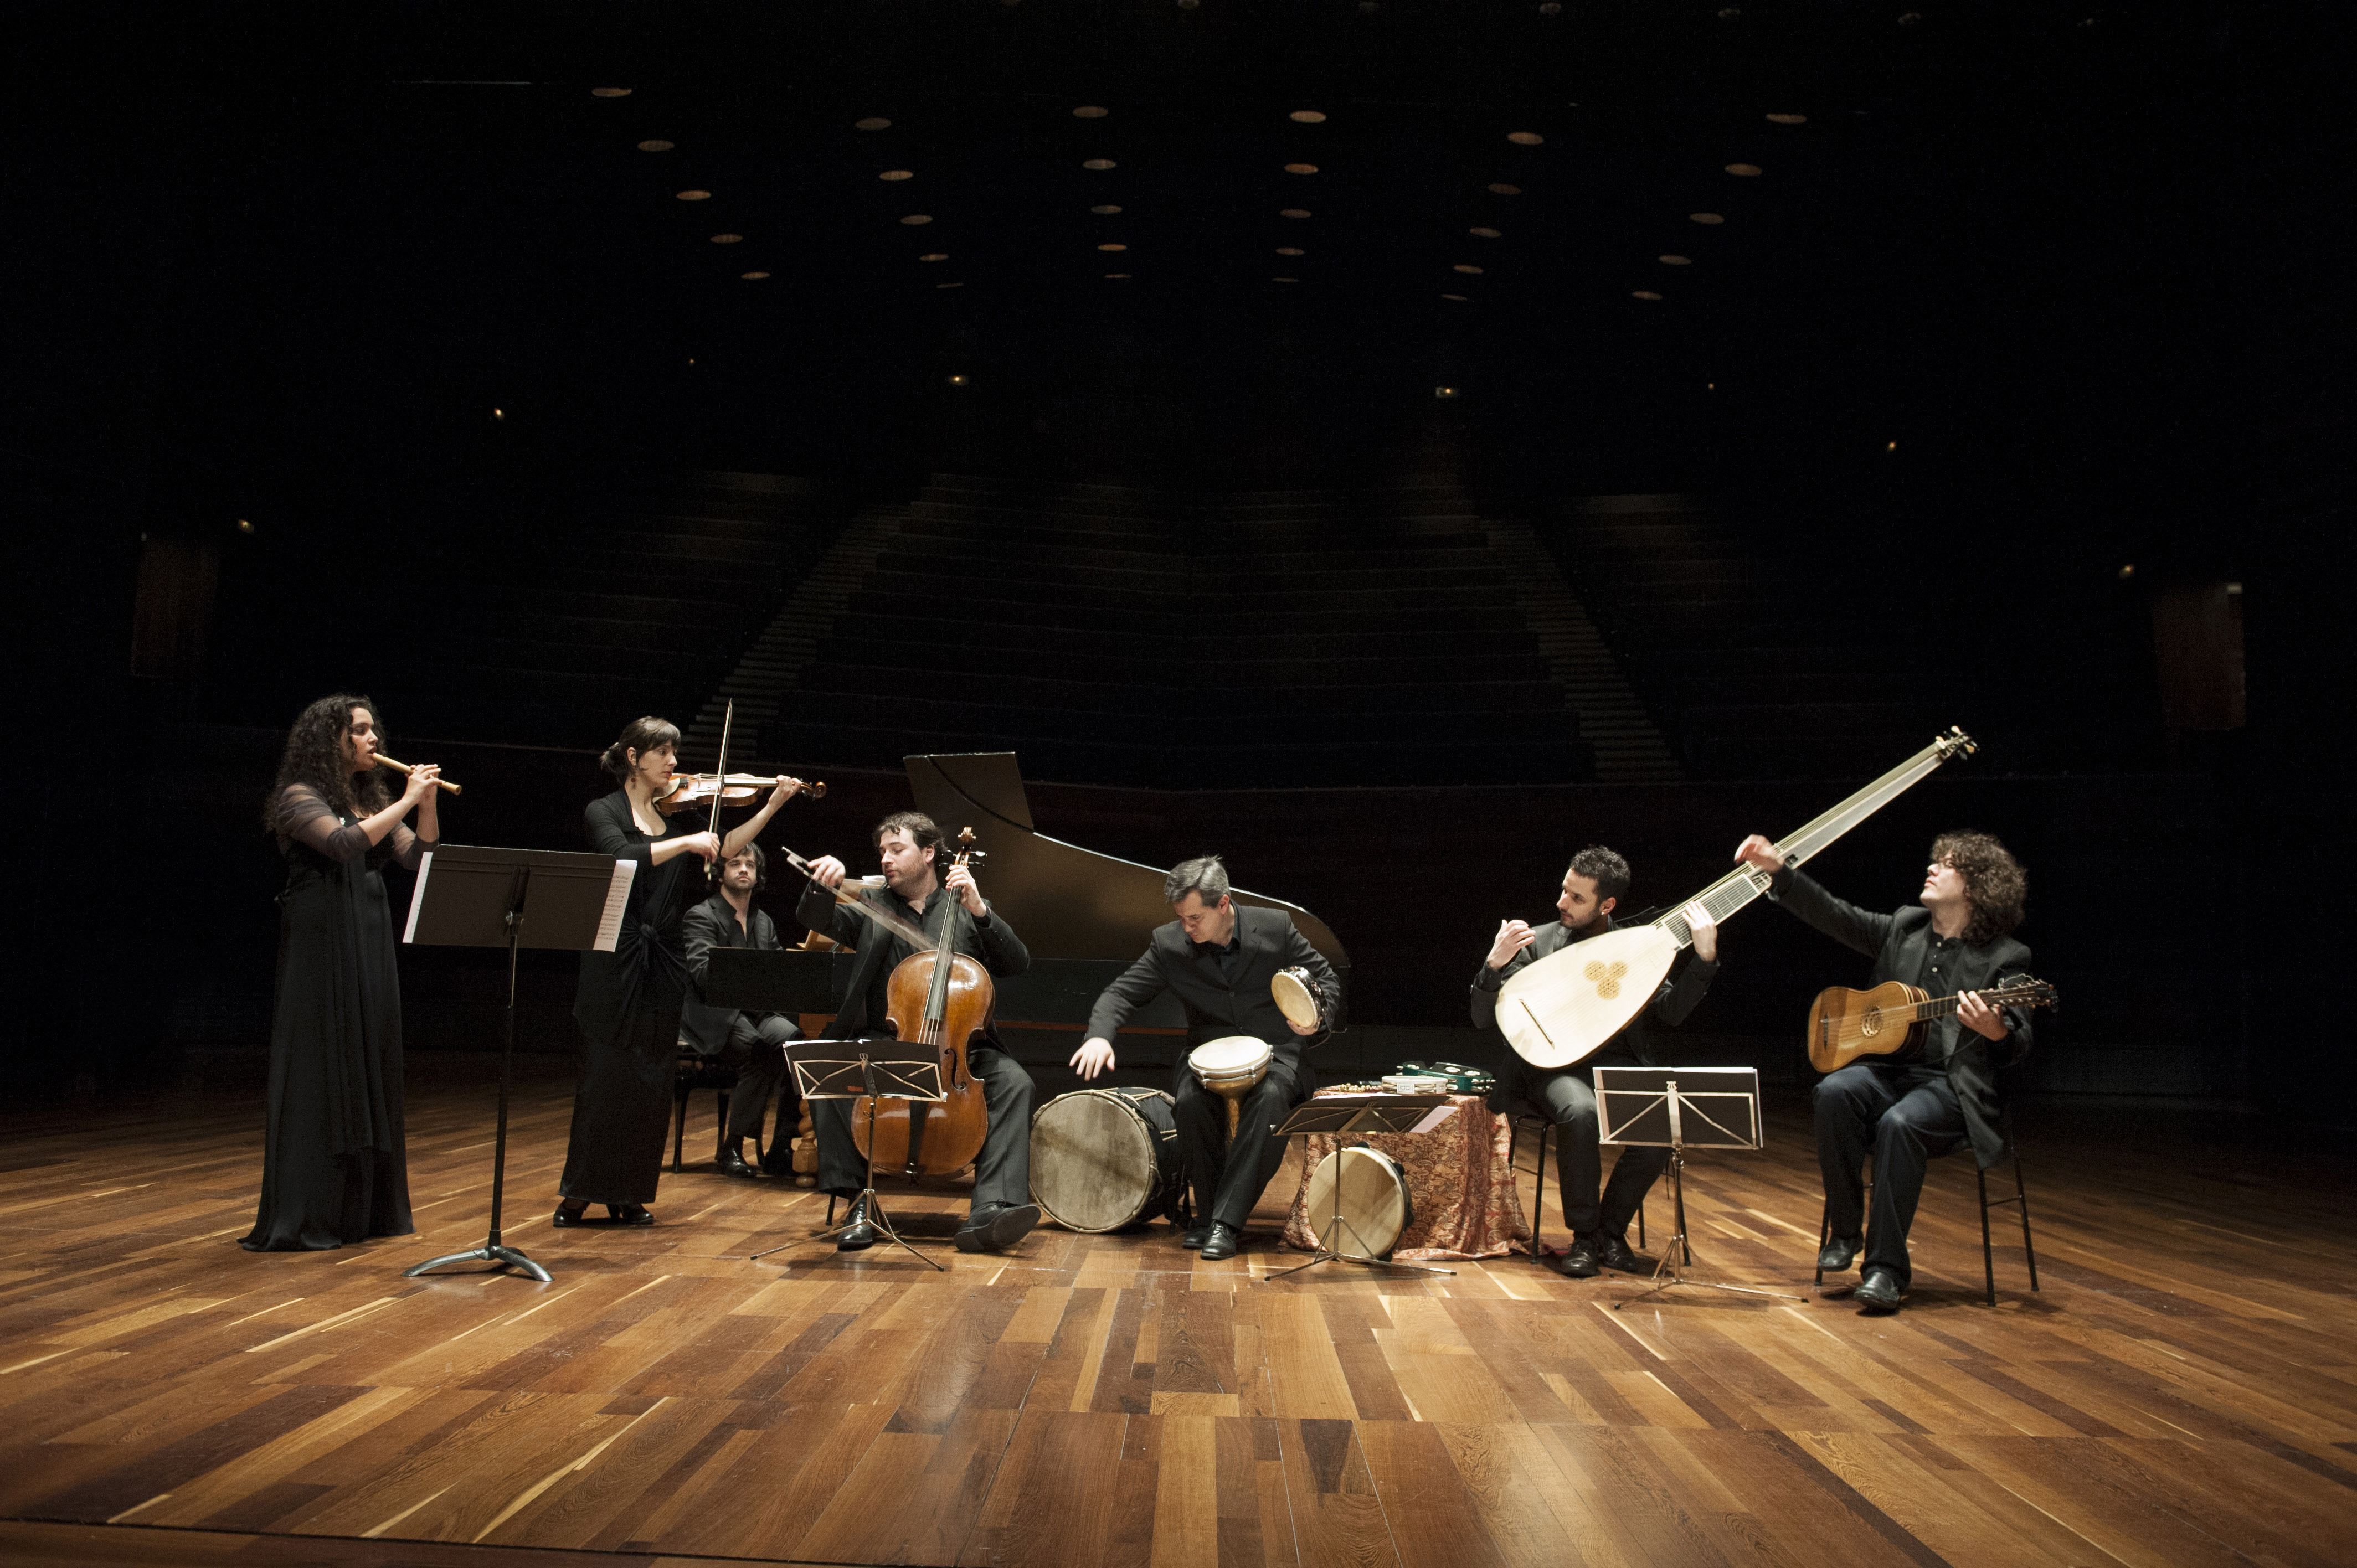 Making Early Music in the Modern Age by Nick Wilson